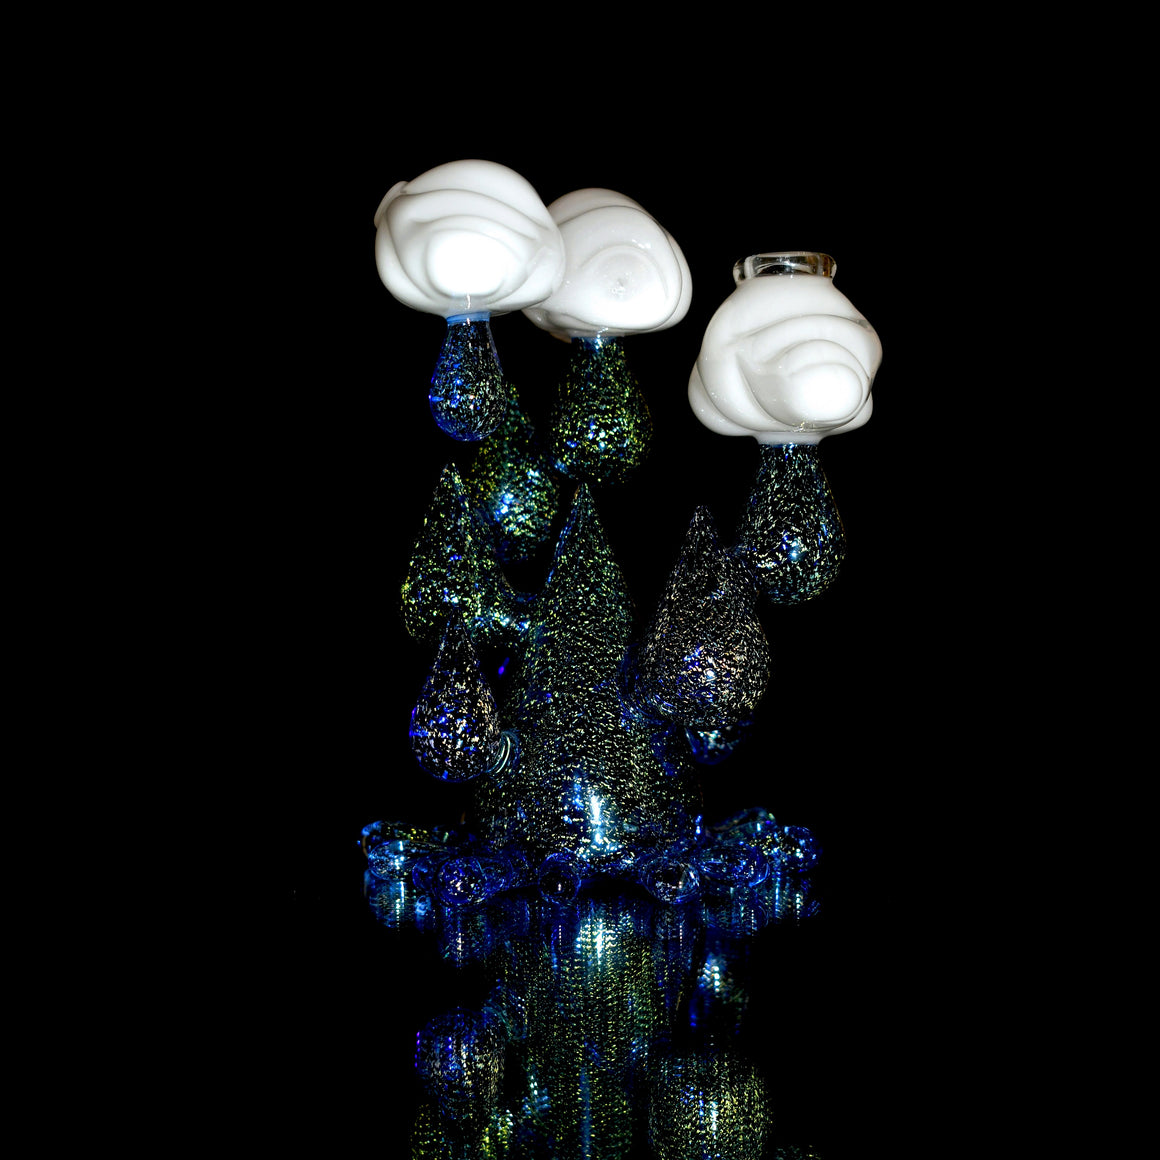 Dichro Raindrop Rig w/ Angel Dabber & matching Gordo cap - Dichroic/White - 14mm Female